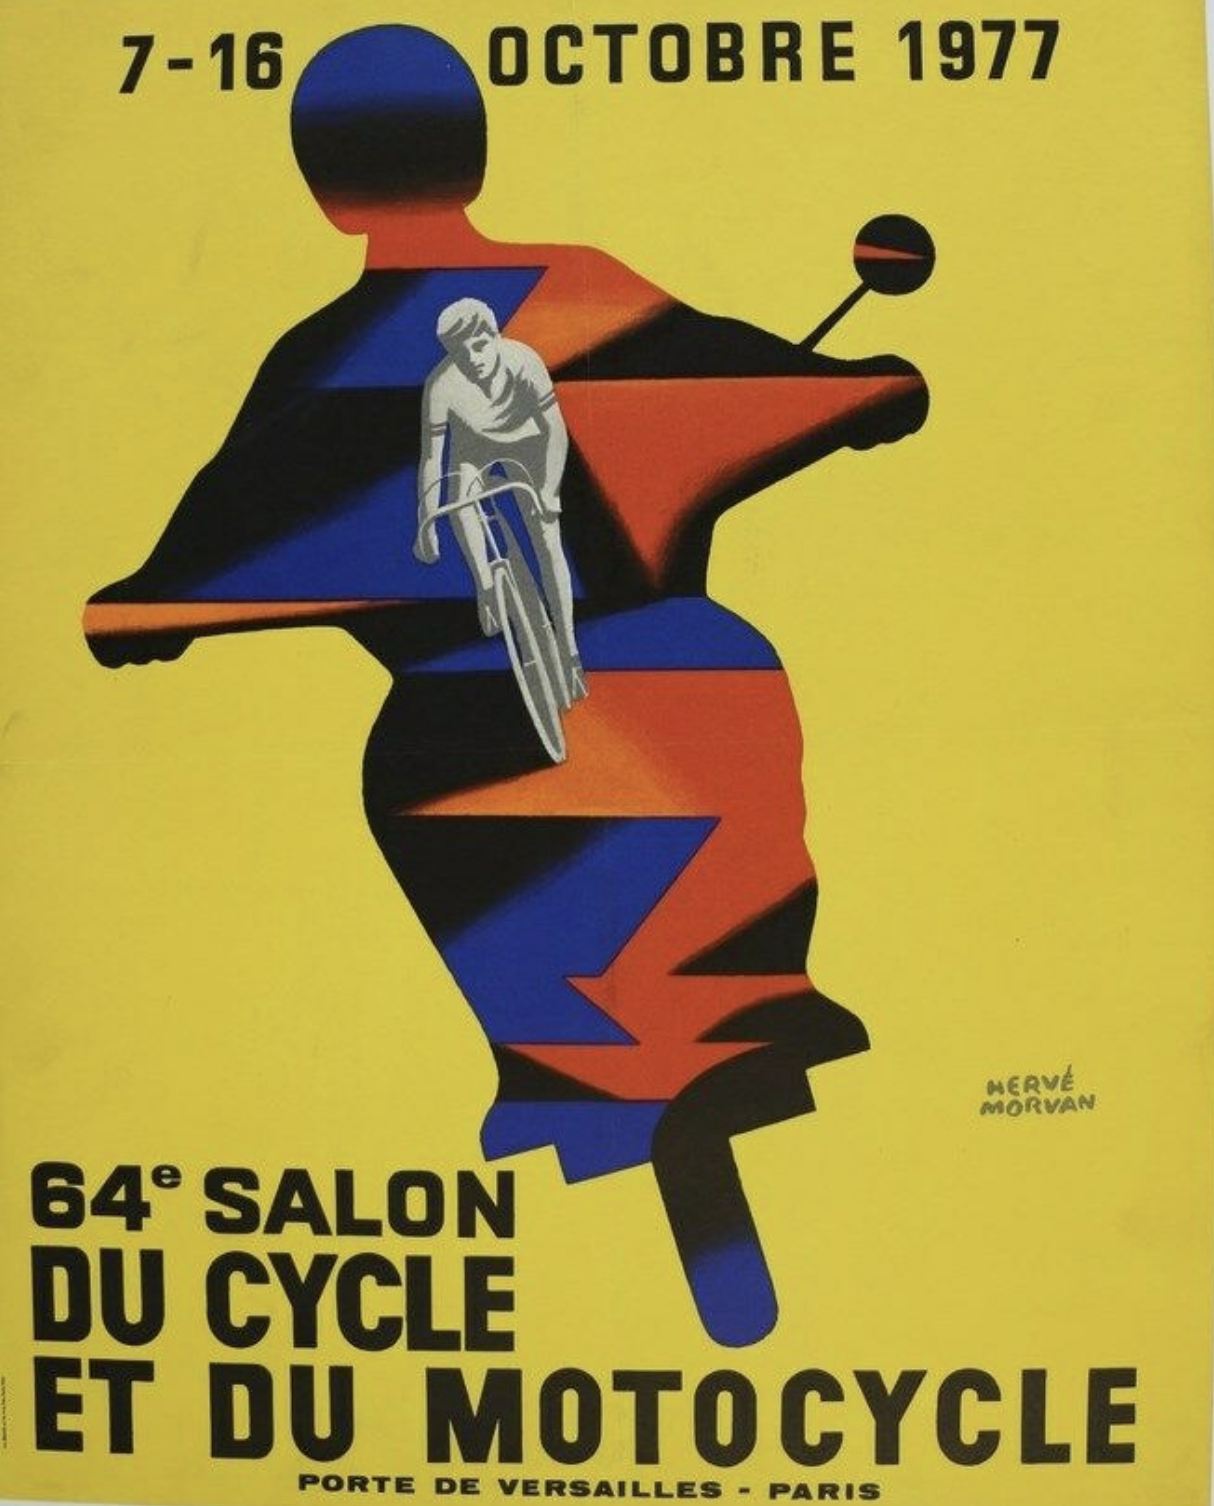 Salon Cycle Motocycle 1977 by Herve Morvan Original Vintage Poster